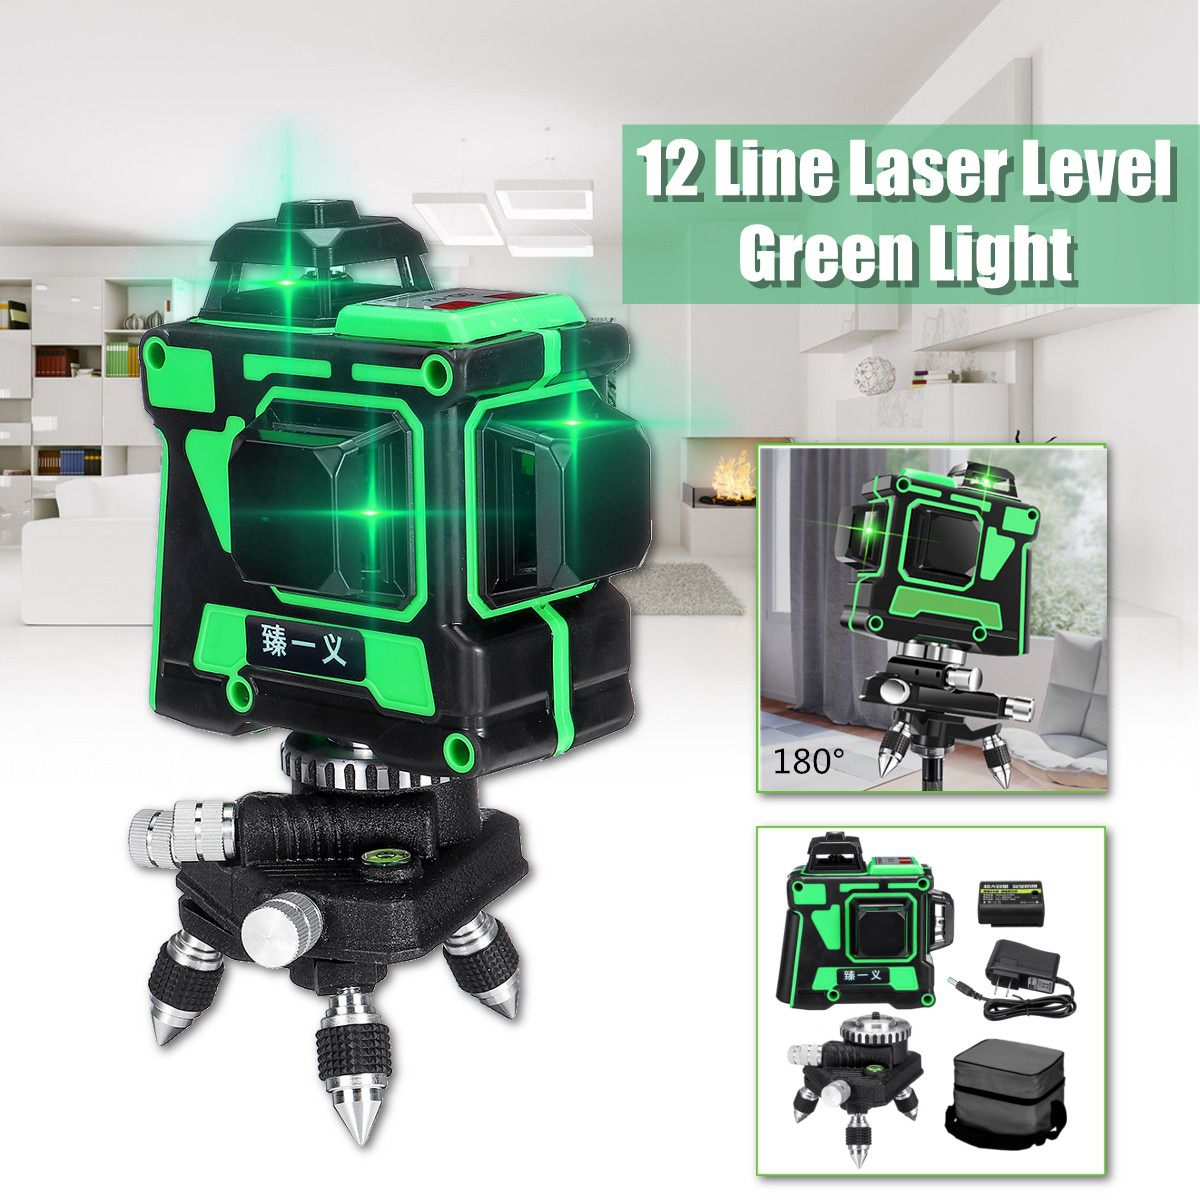 3D 12 Lines Adjustable Laser Levels 360 Self Leveling Horizontal Vertical Cross Green Laser Waterproof Beam Measuring Equipment